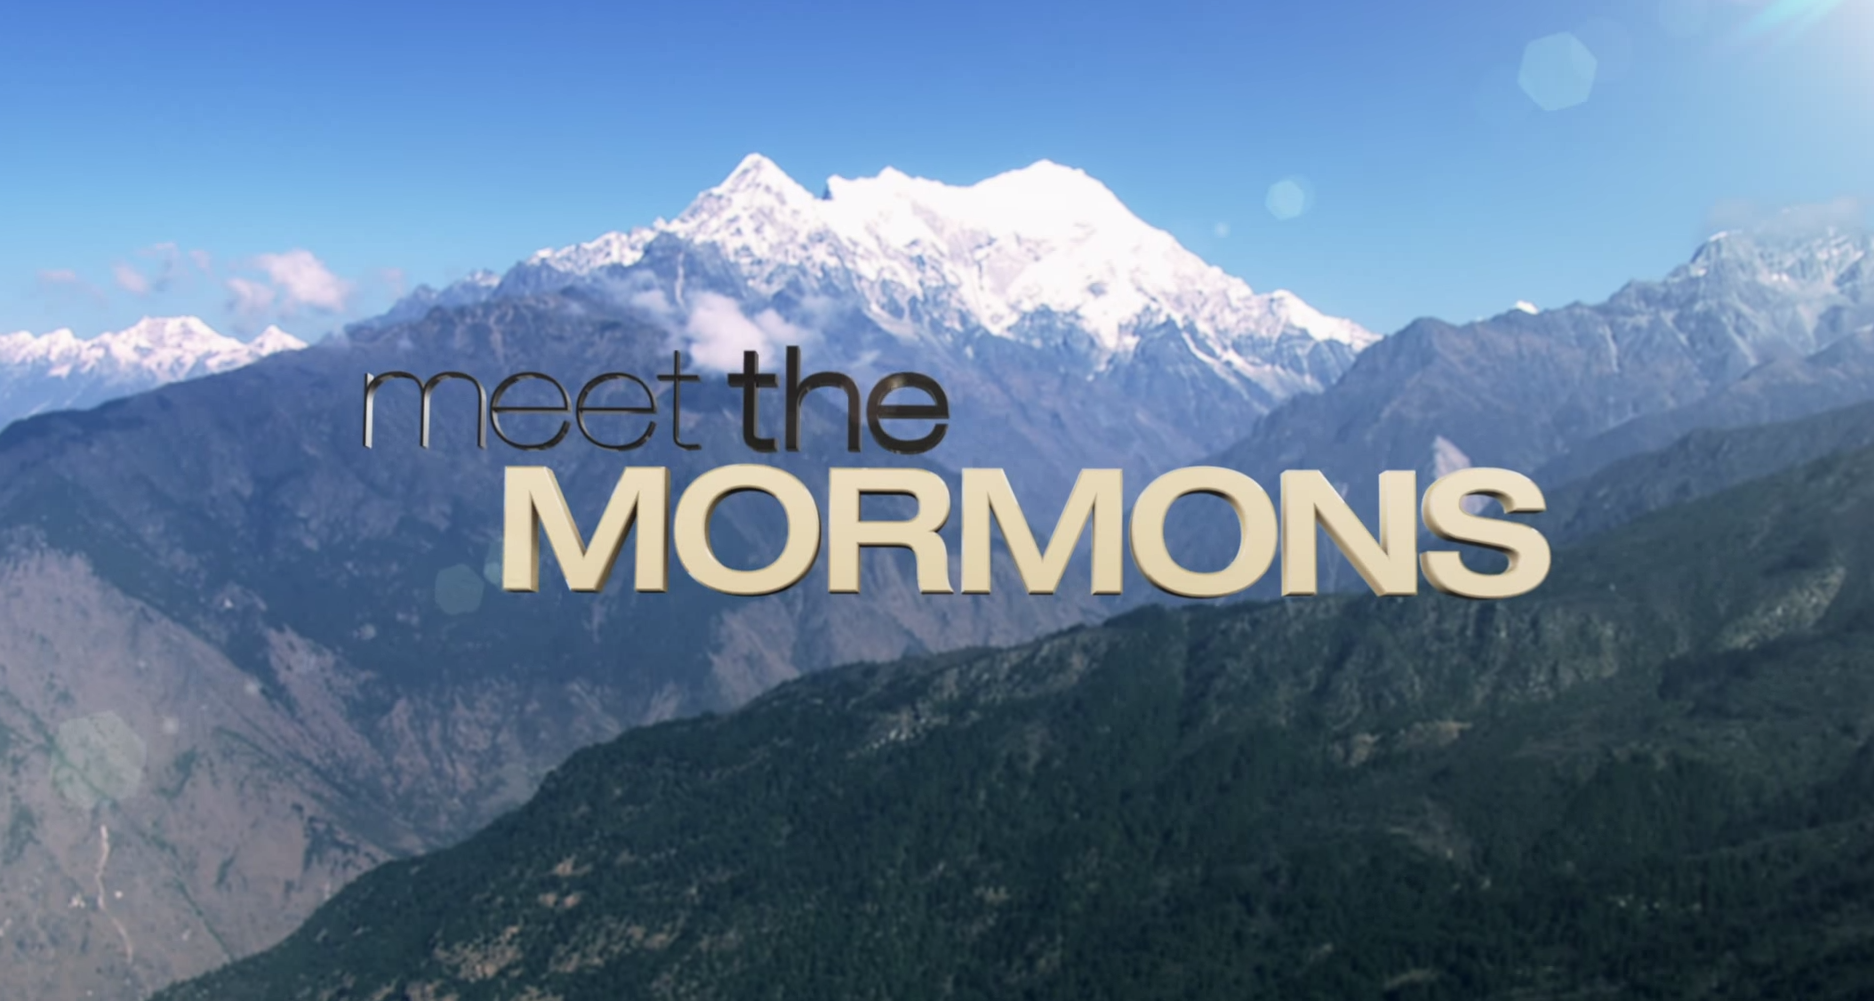 """Meet the Mormons"" Available for Free on YouTube"